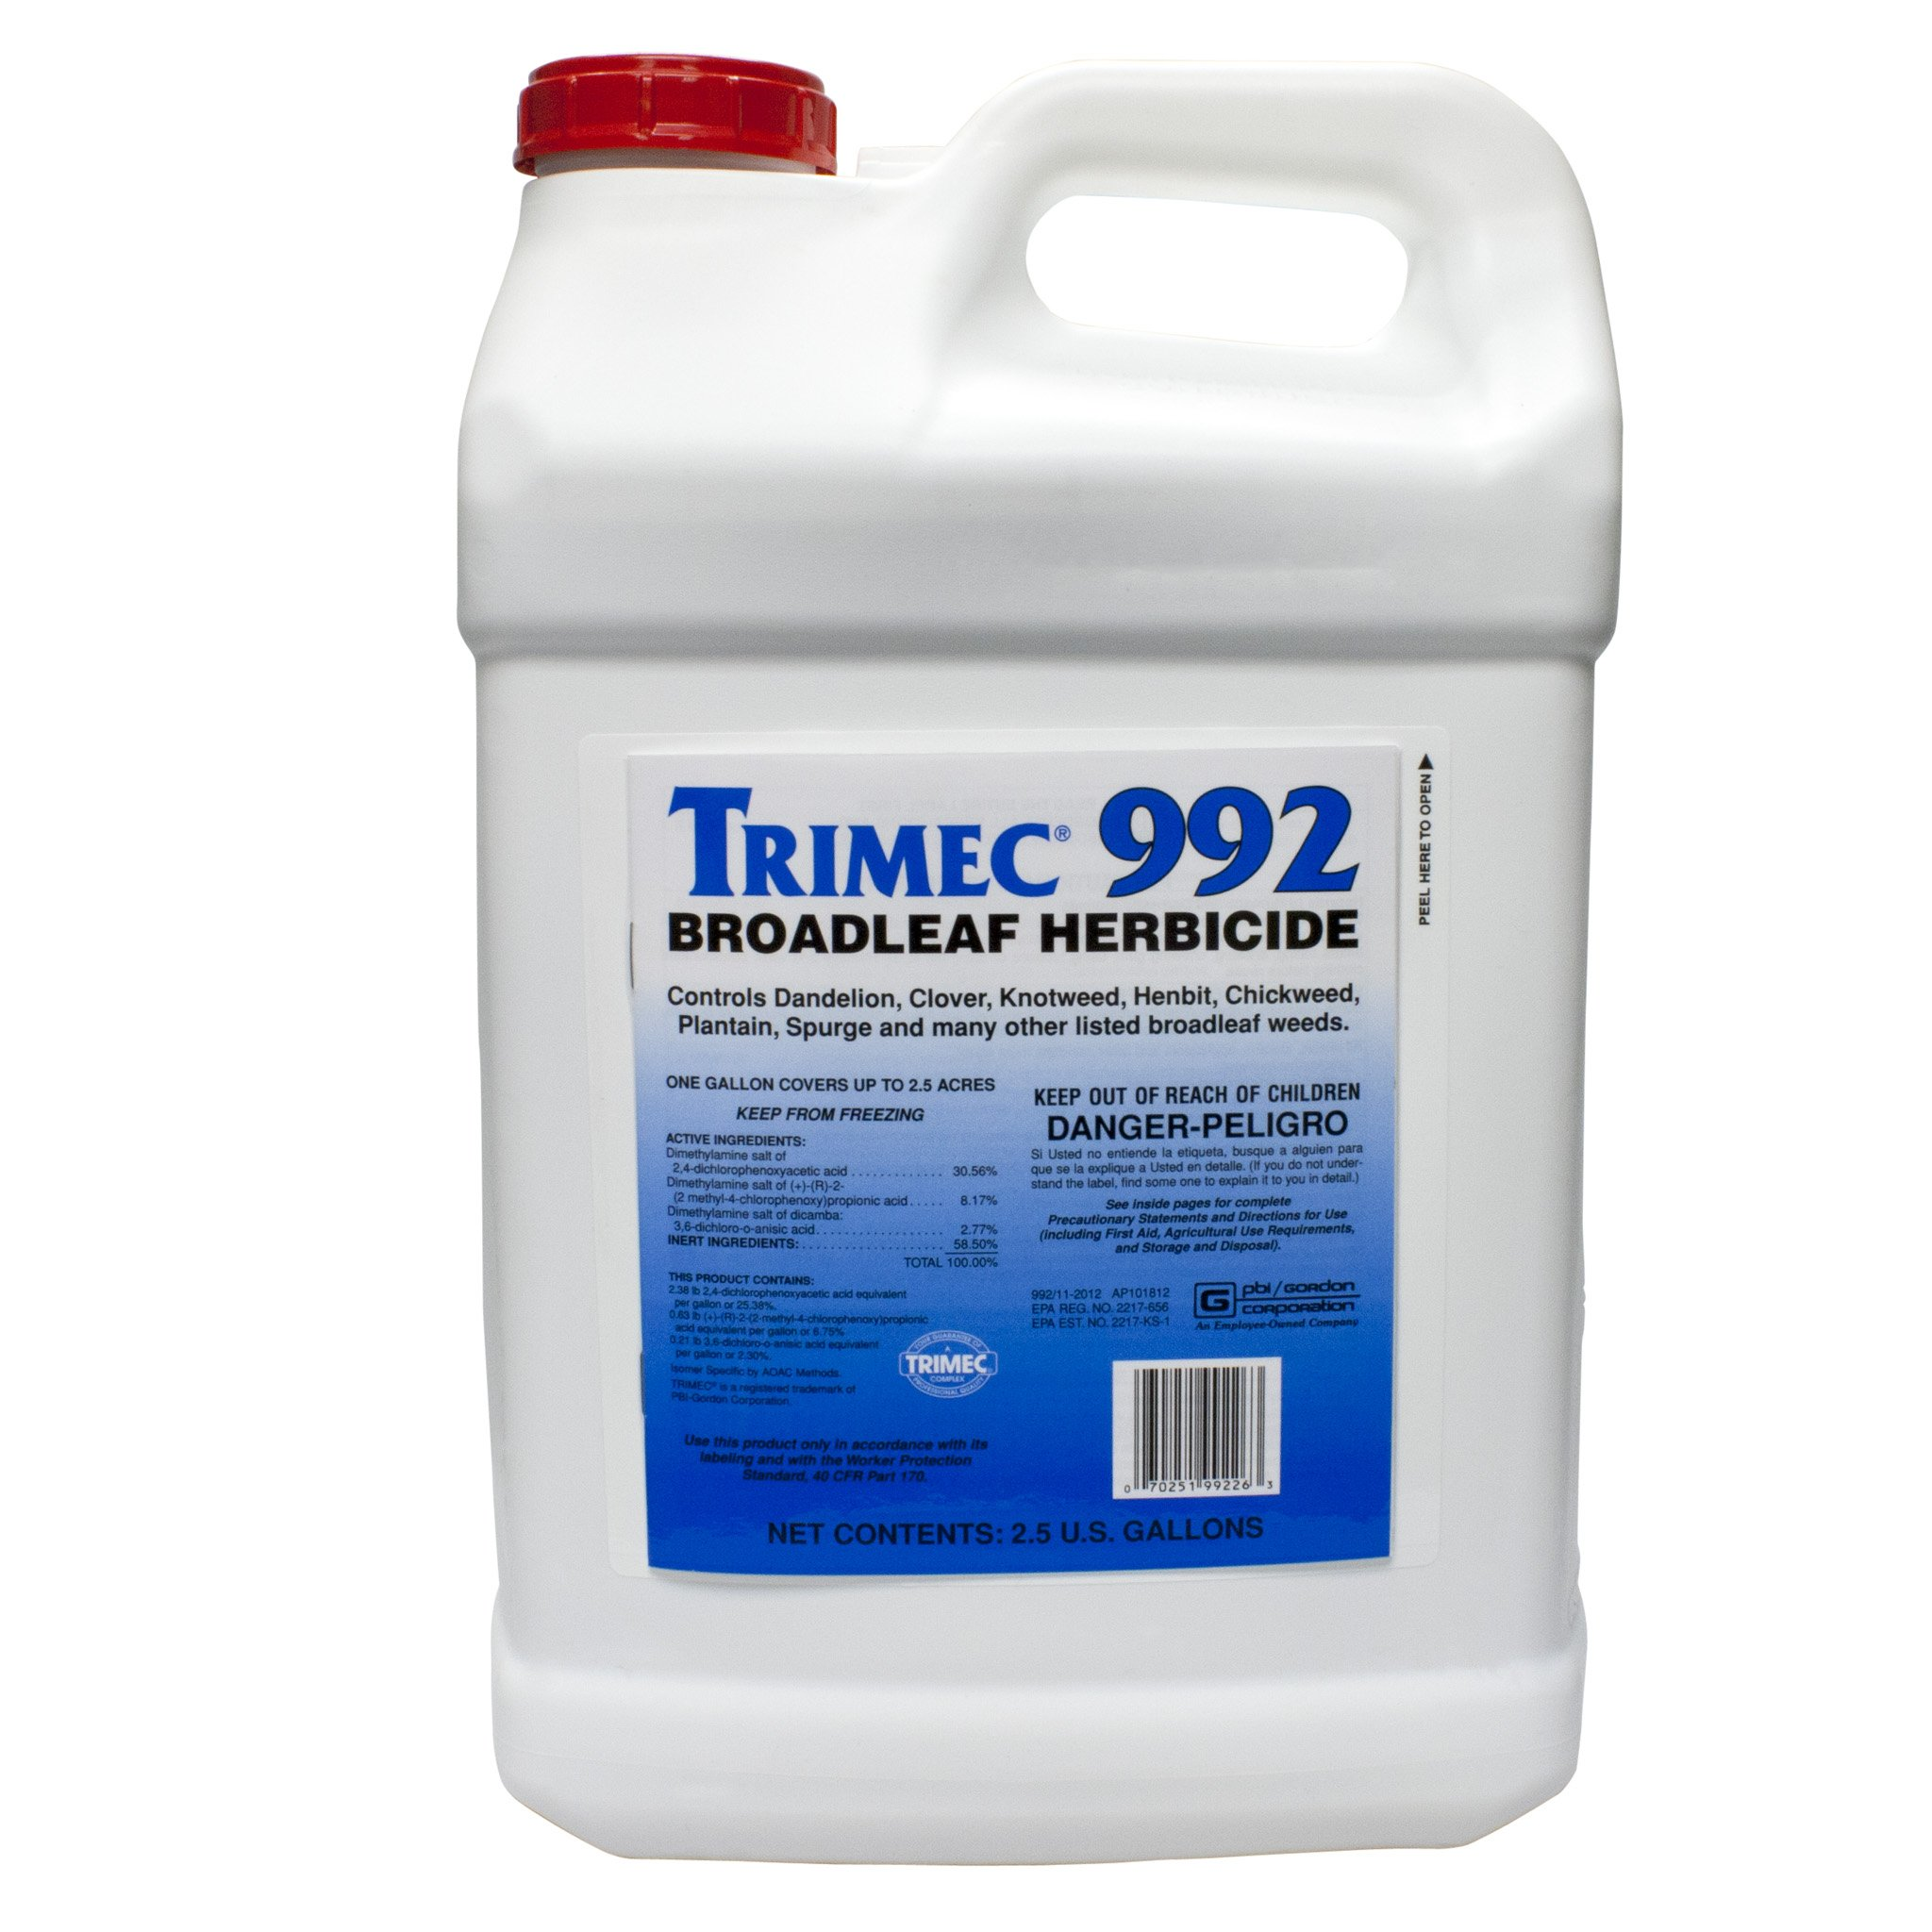 Trimec 992 Broadleaf Herbicide (2.5 Gallons)